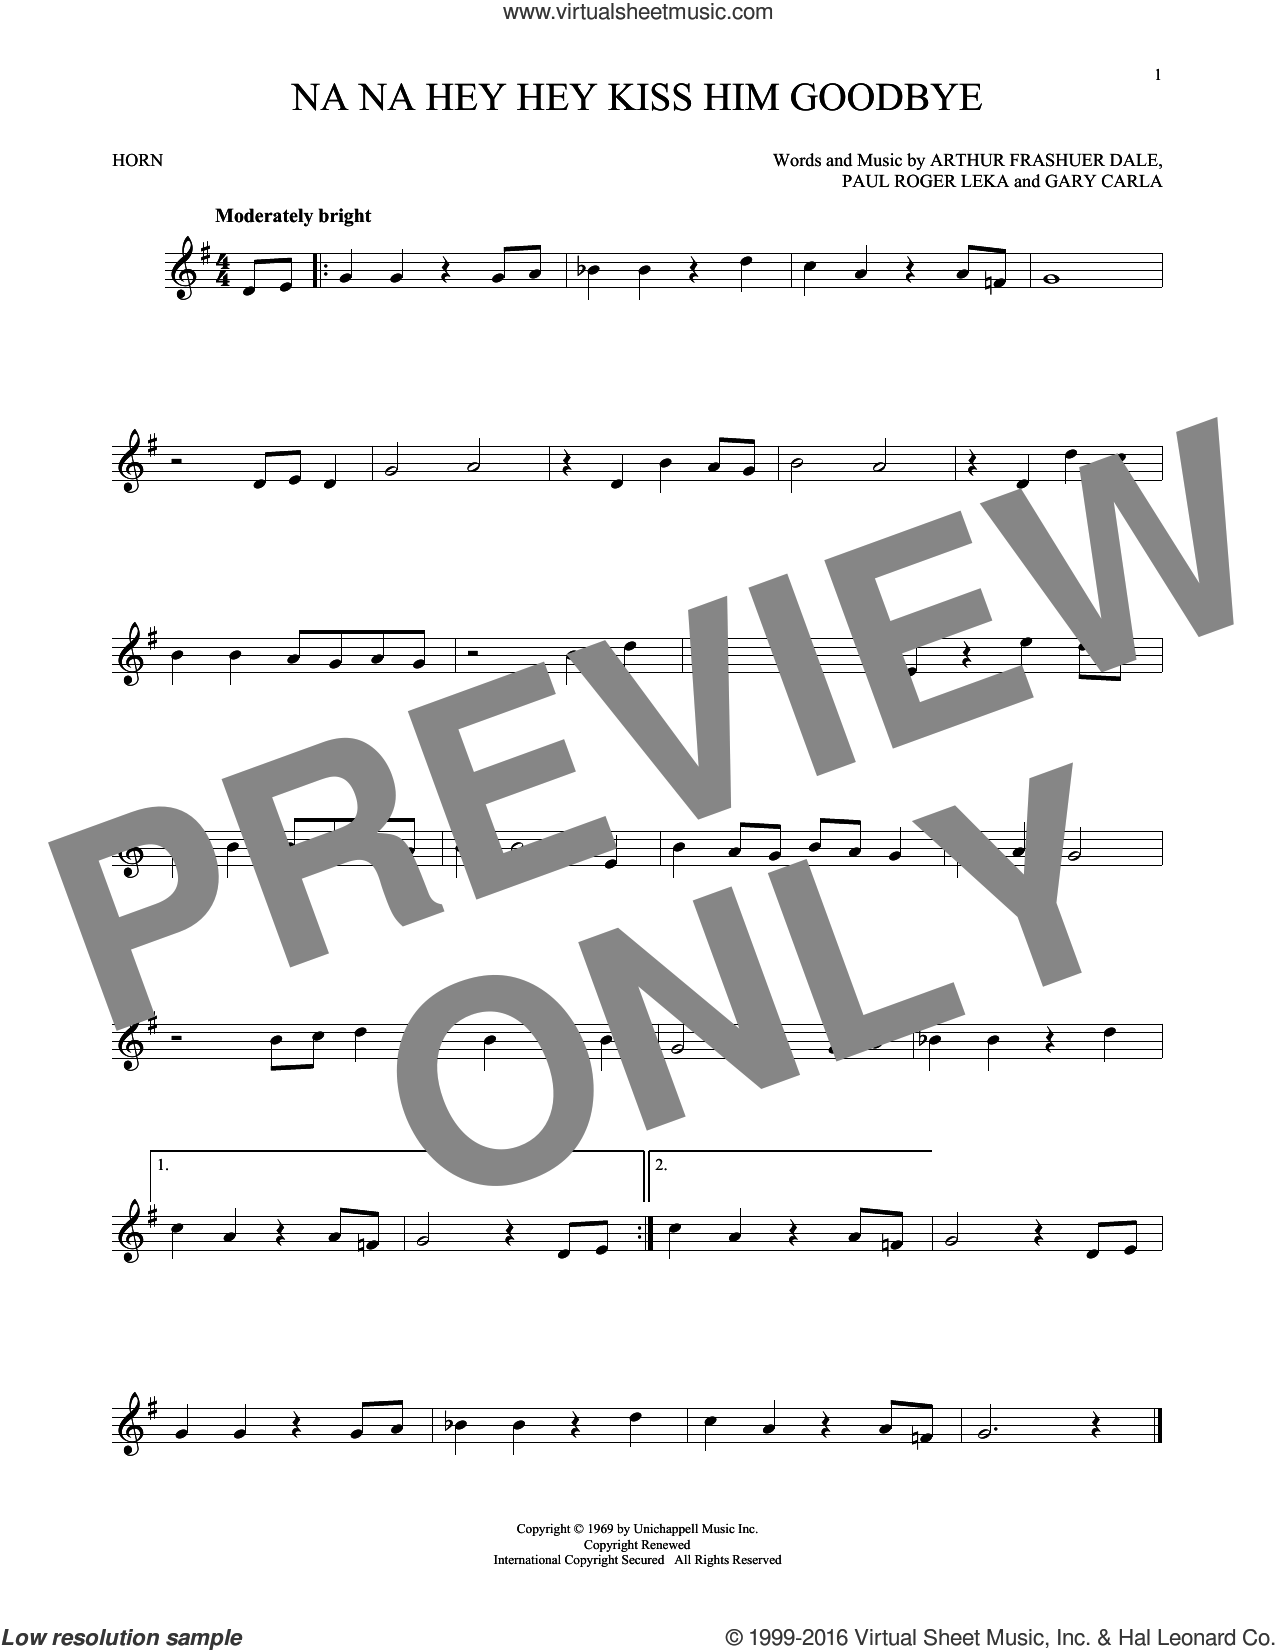 Na Na Hey Hey Kiss Him Goodbye sheet music for horn solo by Steam, Dale Frashuer, Gary De Carlo and Paul Leka, intermediate skill level